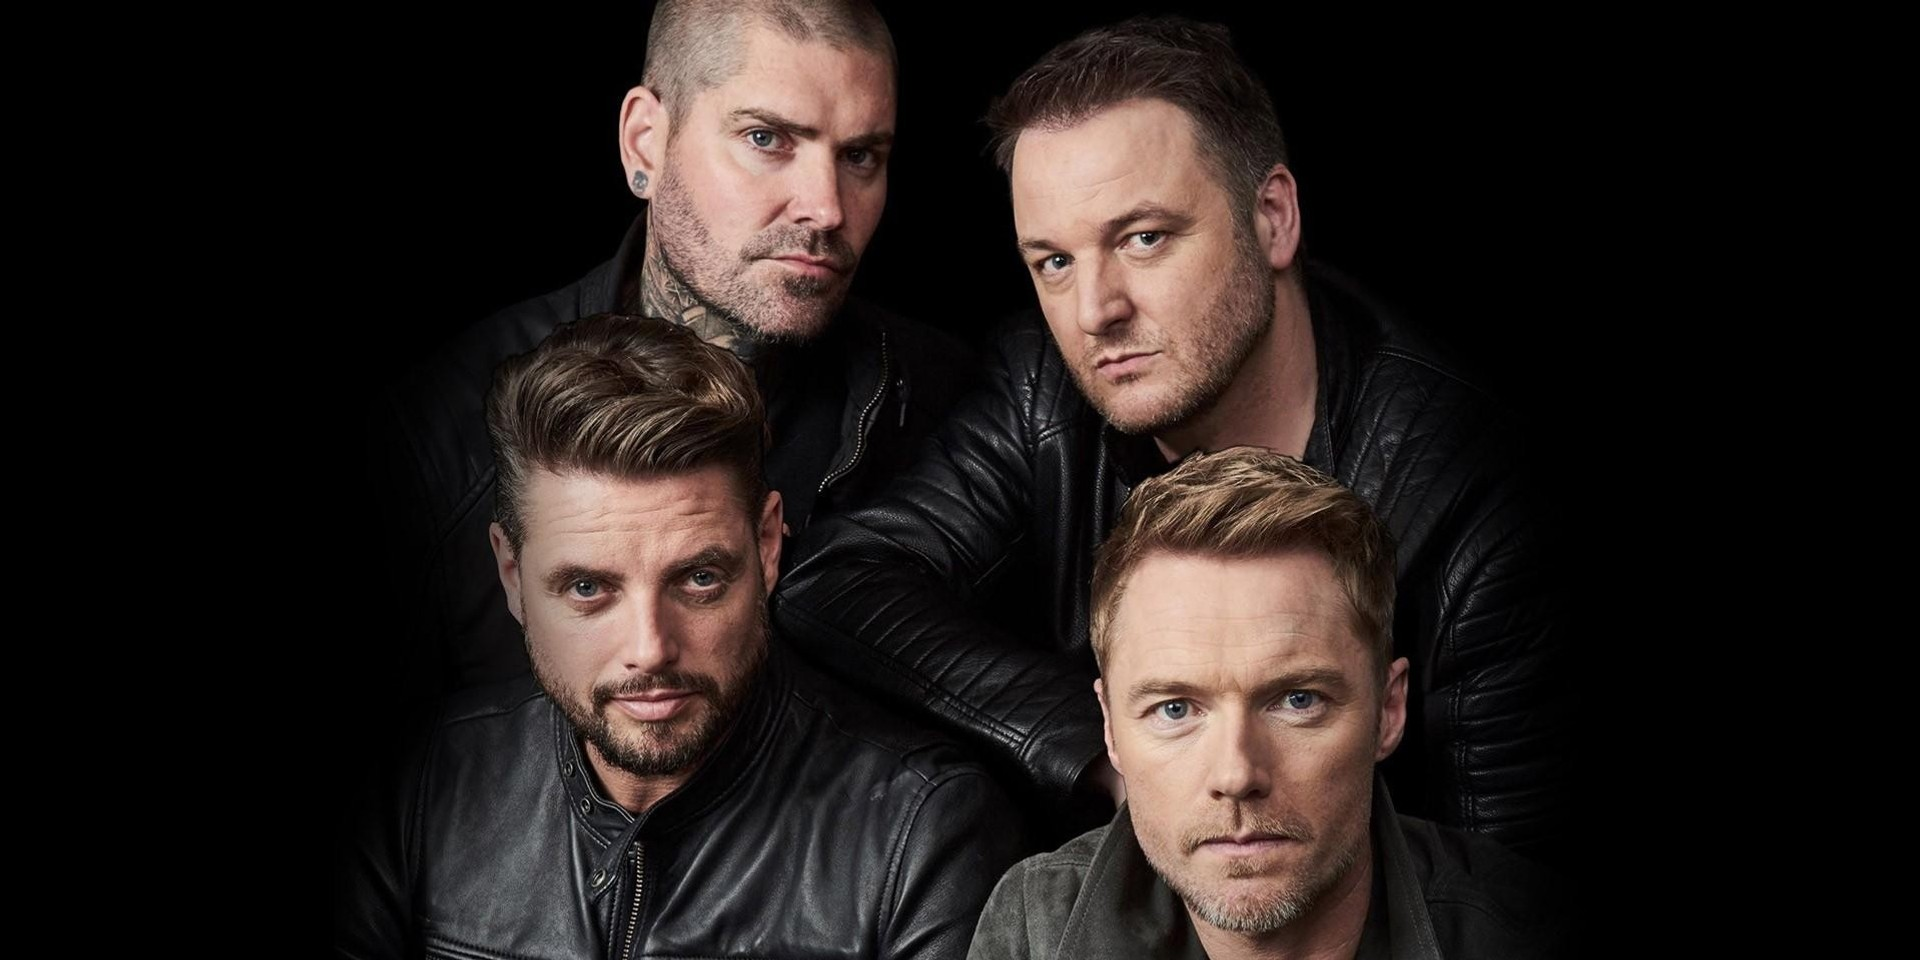 Boyzone's Mikey Graham on their latest album, advice to budding musicians and performing in Singapore for the last time